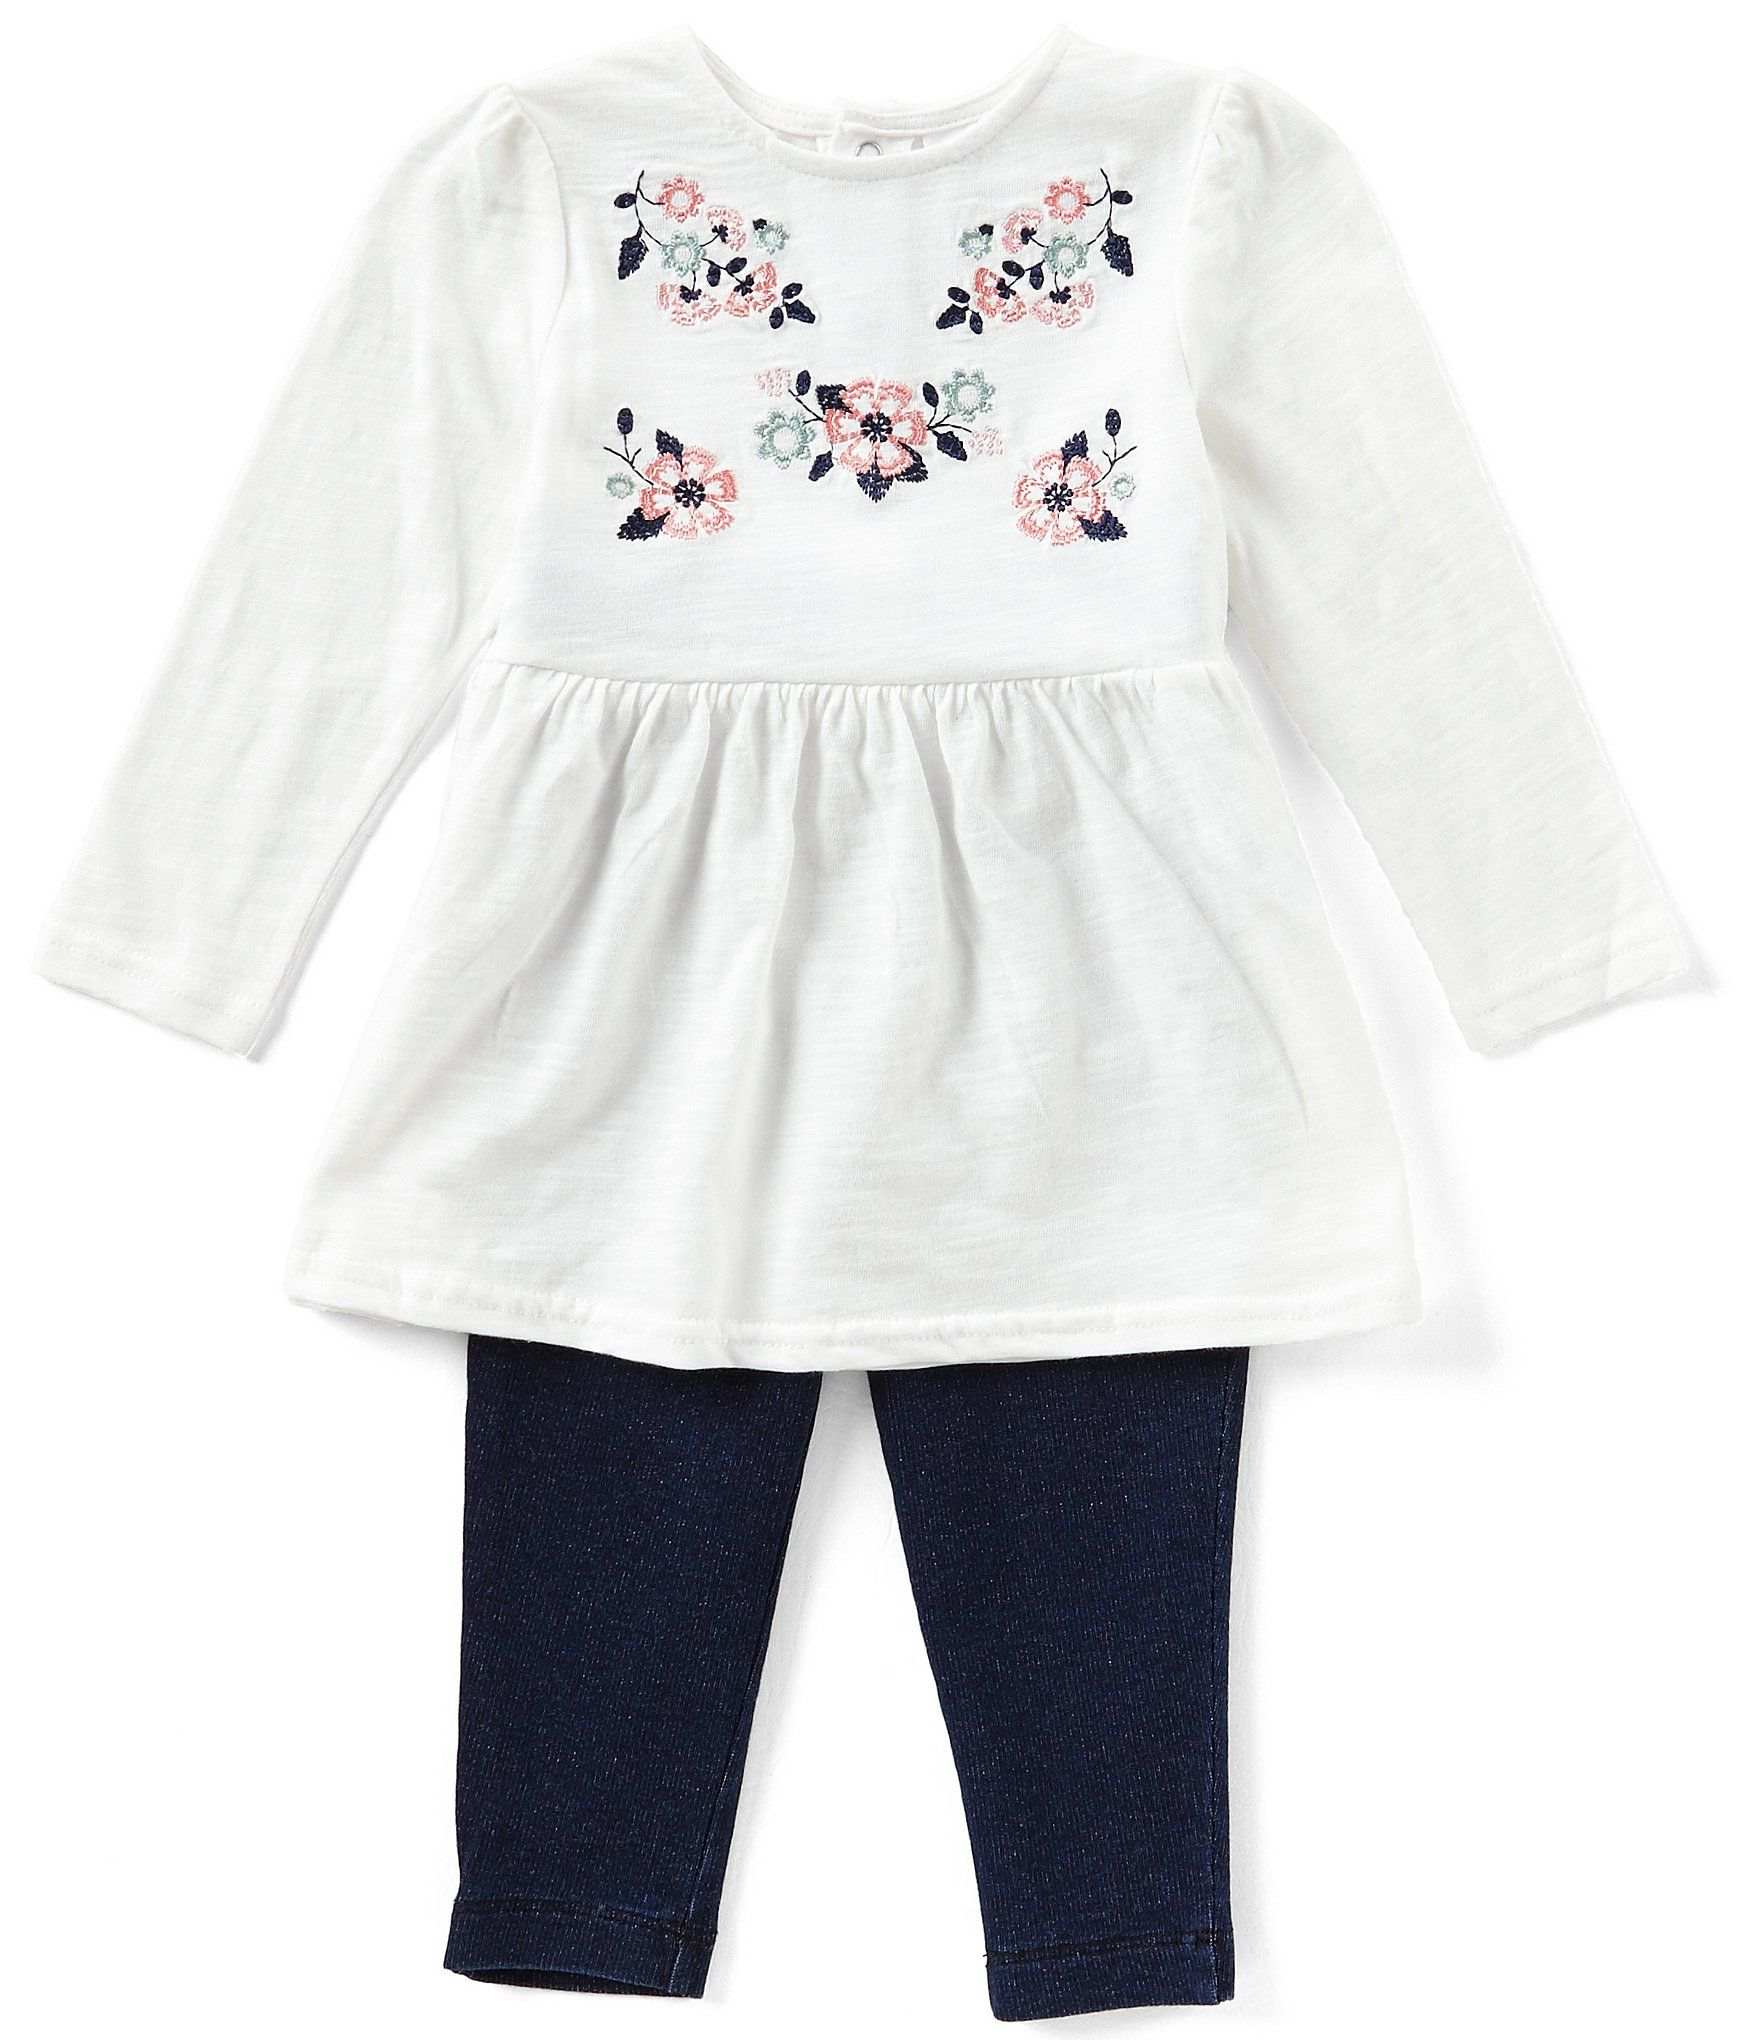 Shop for Starting Out Baby Girls 12 24 Months Floral Embroidered Top